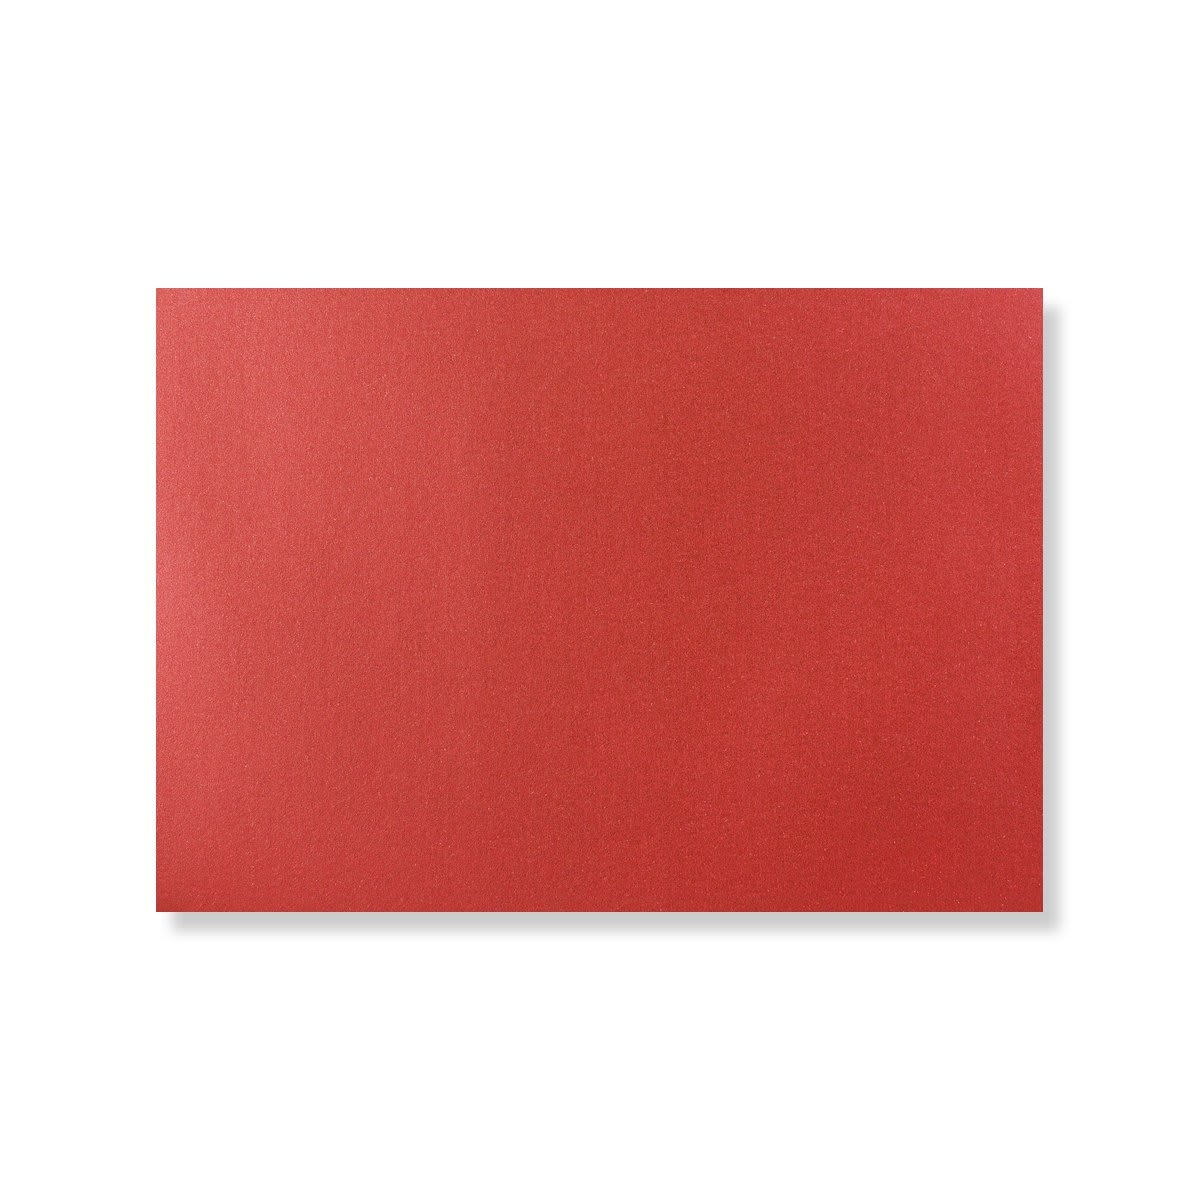 C6 CARDINAL RED PEARLESCENT ENVELOPES